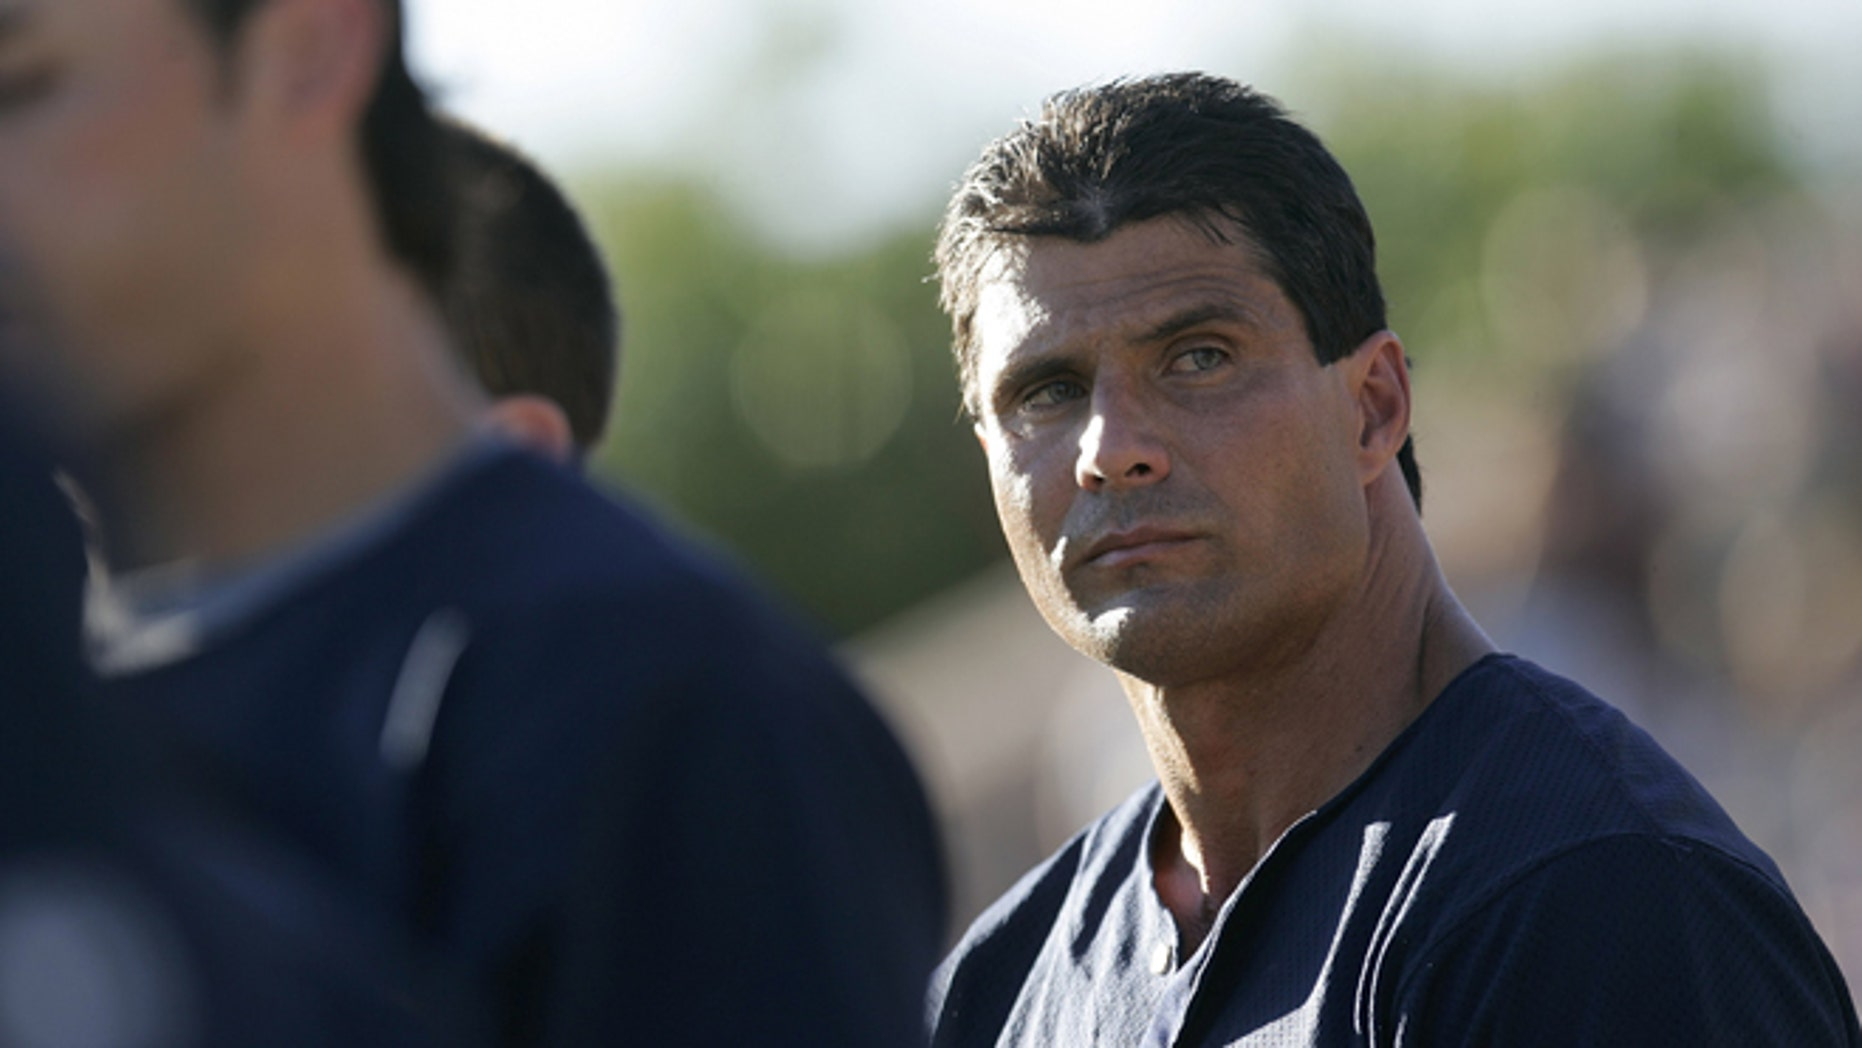 """CHICO, CA -  JULY 3:  Former Major League baseball player Jose Canseco of the San Diego Surf Dawgs is shown during a game against the Chico Outlaws July 3, 2006 in Chico, California. Canseco, the 1988 AL MVP whose autobiography """"Juiced"""" 16 months ago accused several top players of steroid use, signed a contract with the unaffiliated Dawgs to be the designated hitter, and pitcher.  (Photo by David Paul Morris/Getty Images)"""